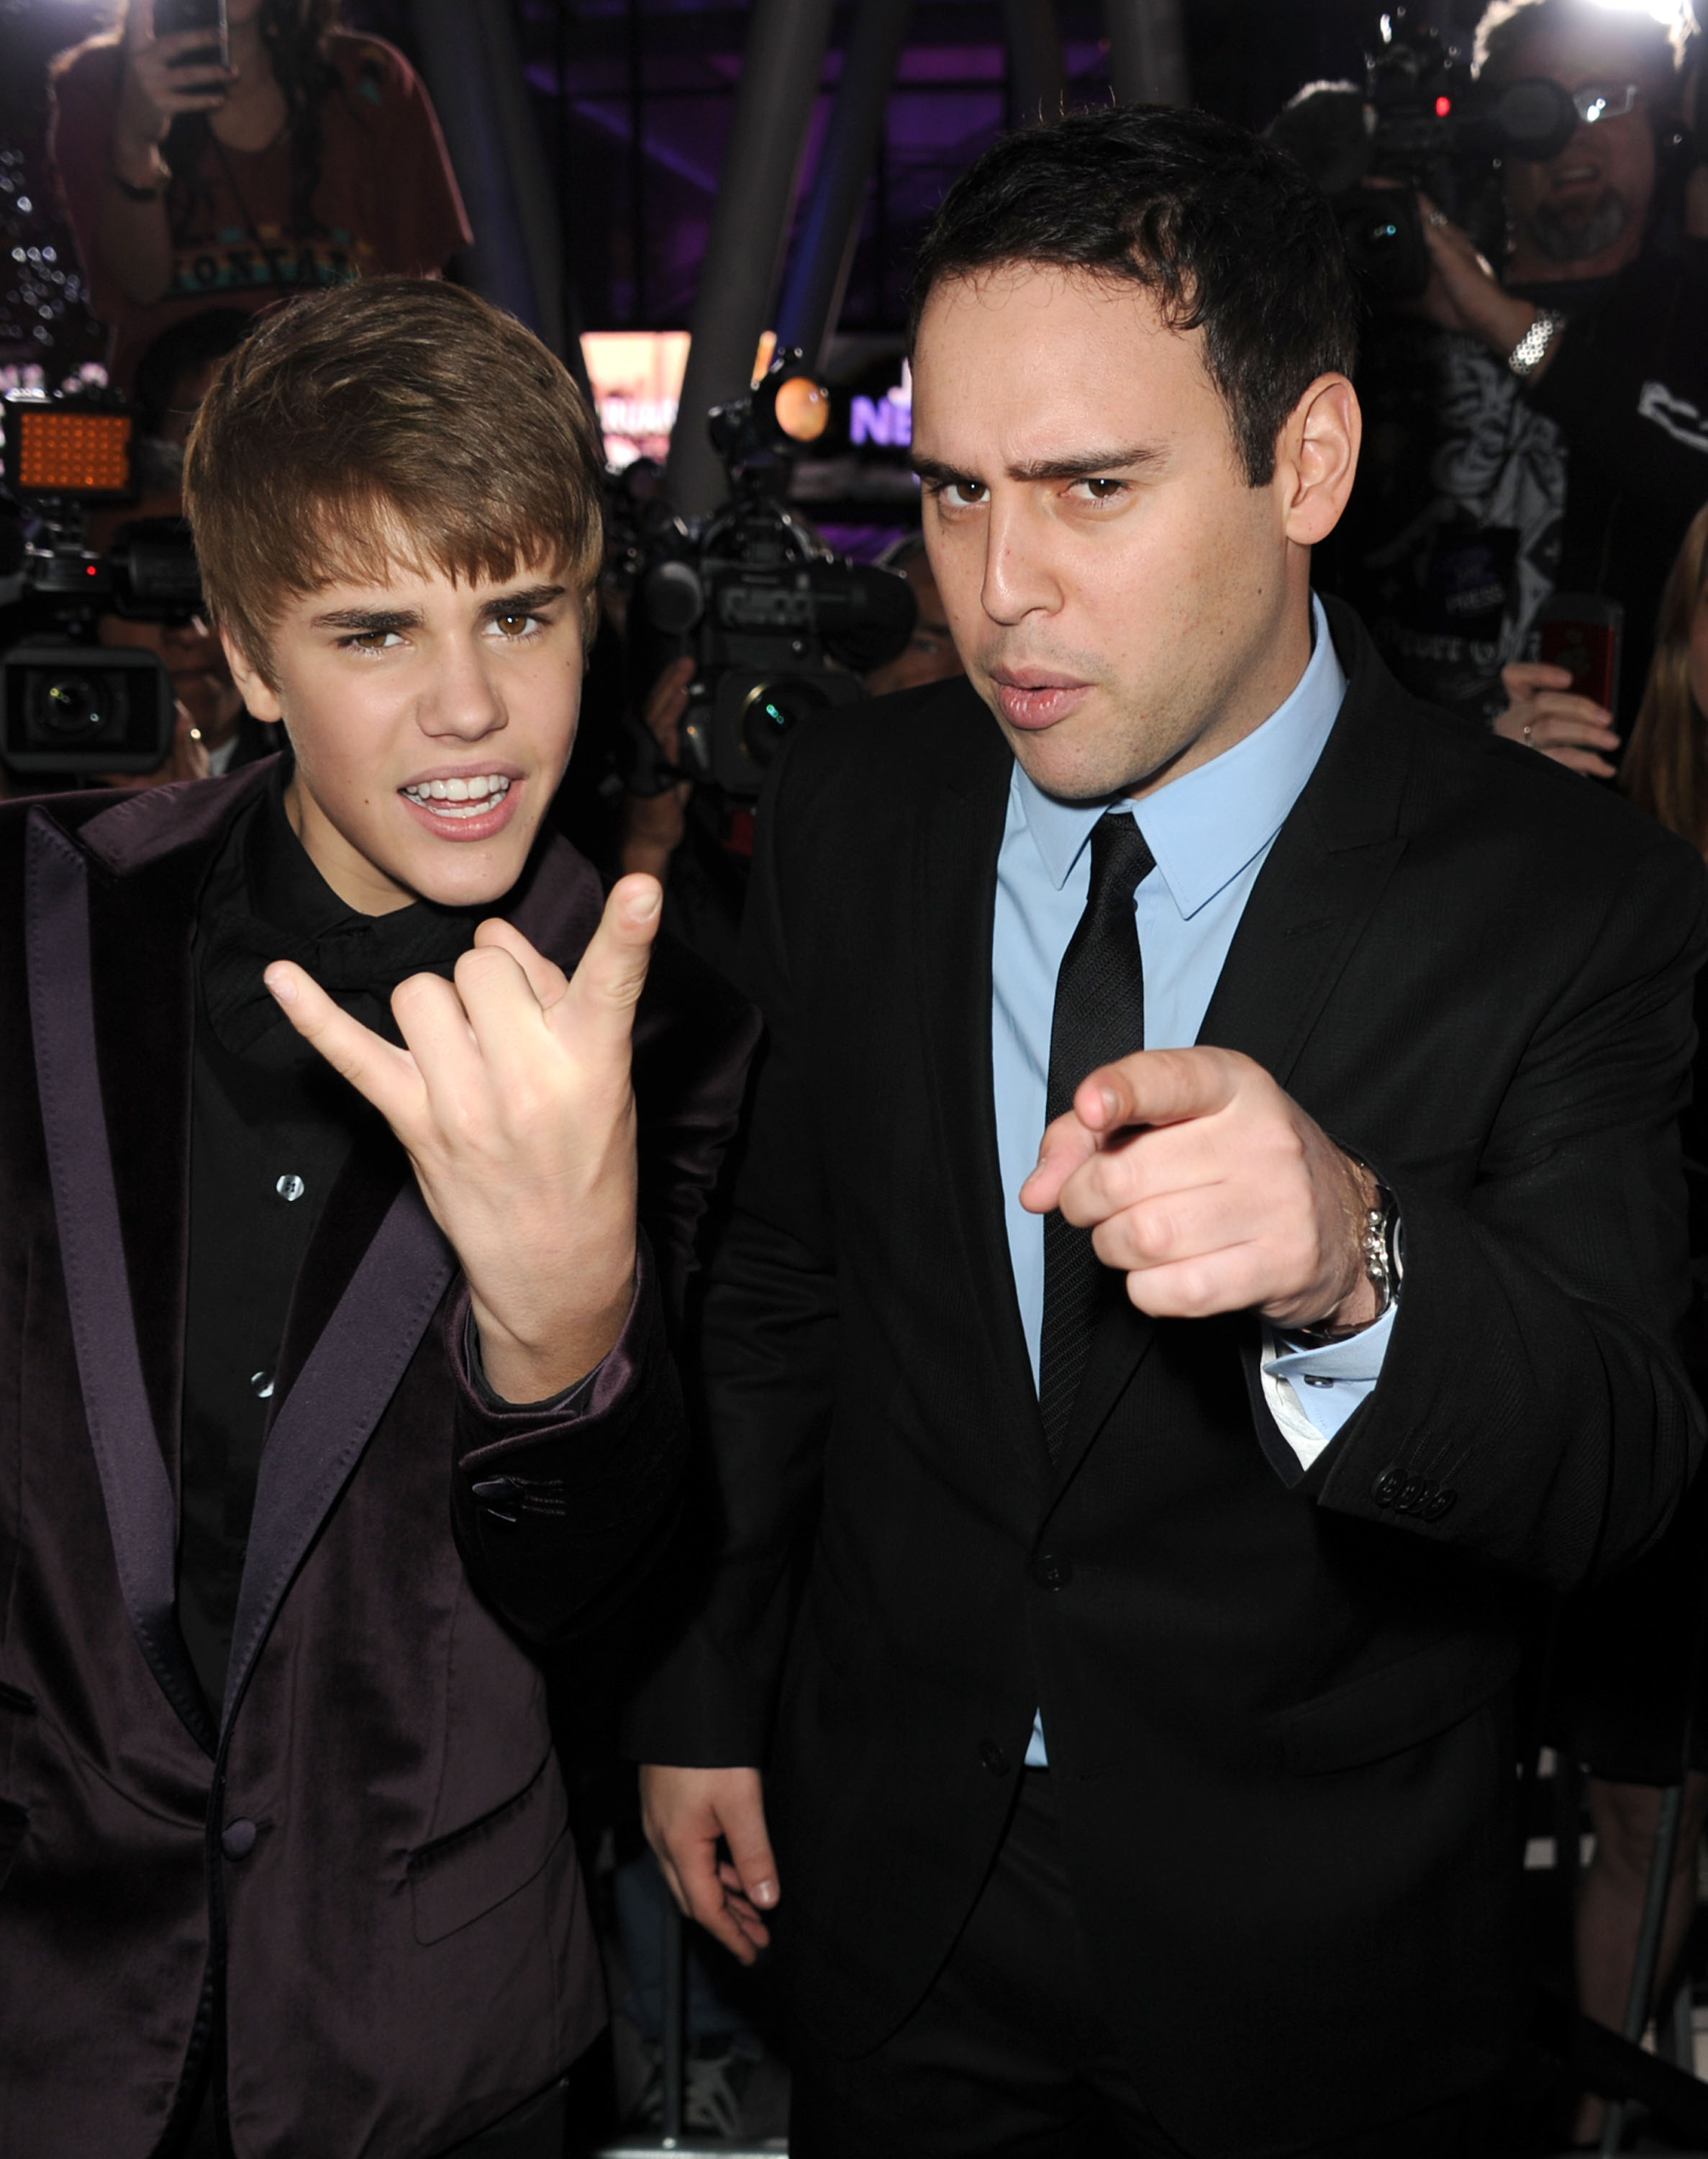 Singer Justin Bieber (L) and manager Scooter Braun arrive at the premiere of Paramount Pictures' 'Justin Bieber: Never Say Never' held at Nokia Theater L.A. Live on February 8, 2011 in Los Angeles, California.